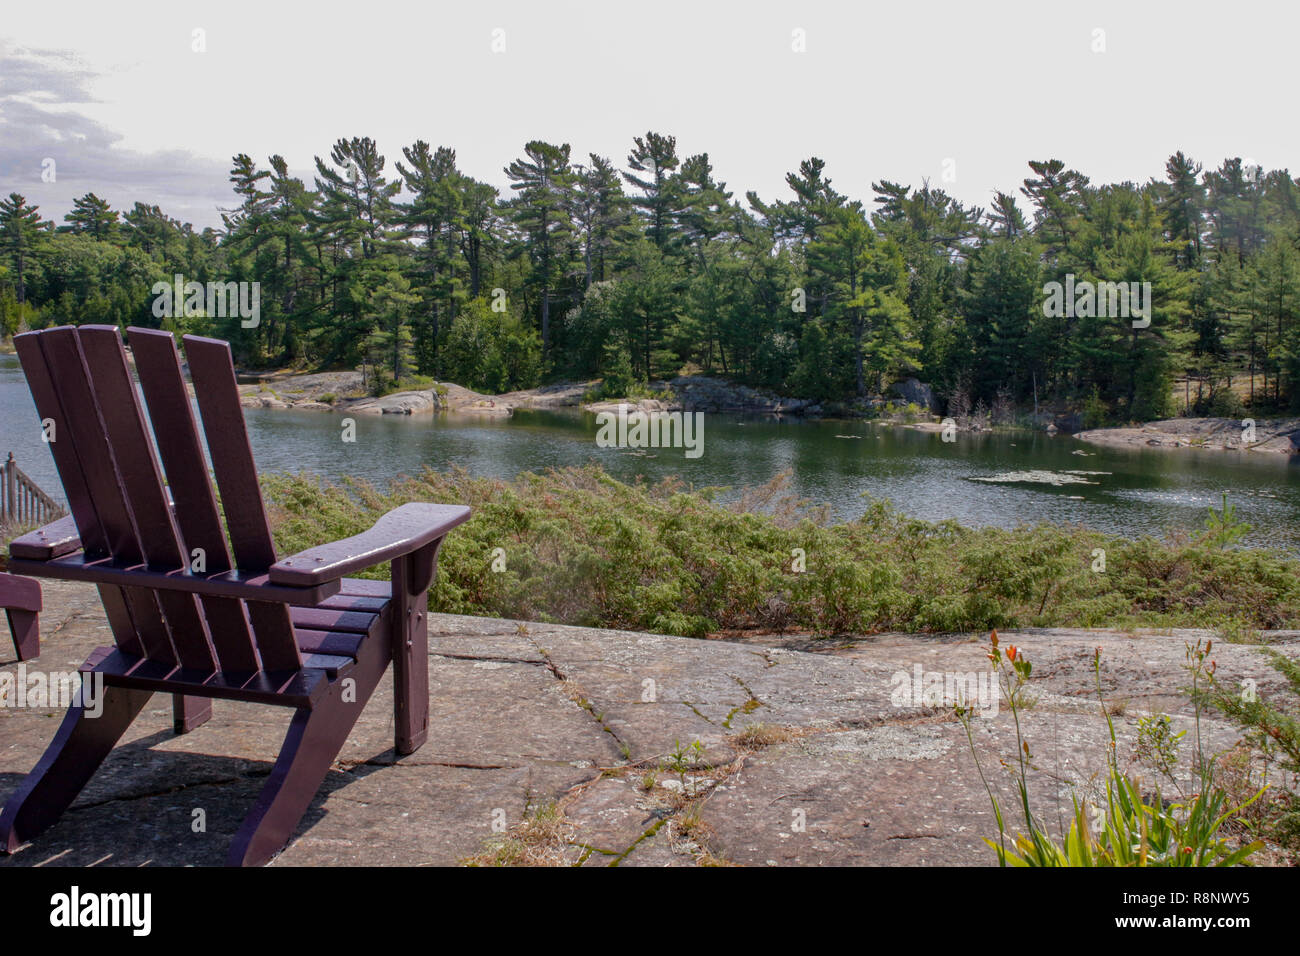 Two black Muskoka chairs sitting on a wood dock facing a lake. Across the calm water is a white cottage nestled among green trees. Canada flag is visible - Stock Image